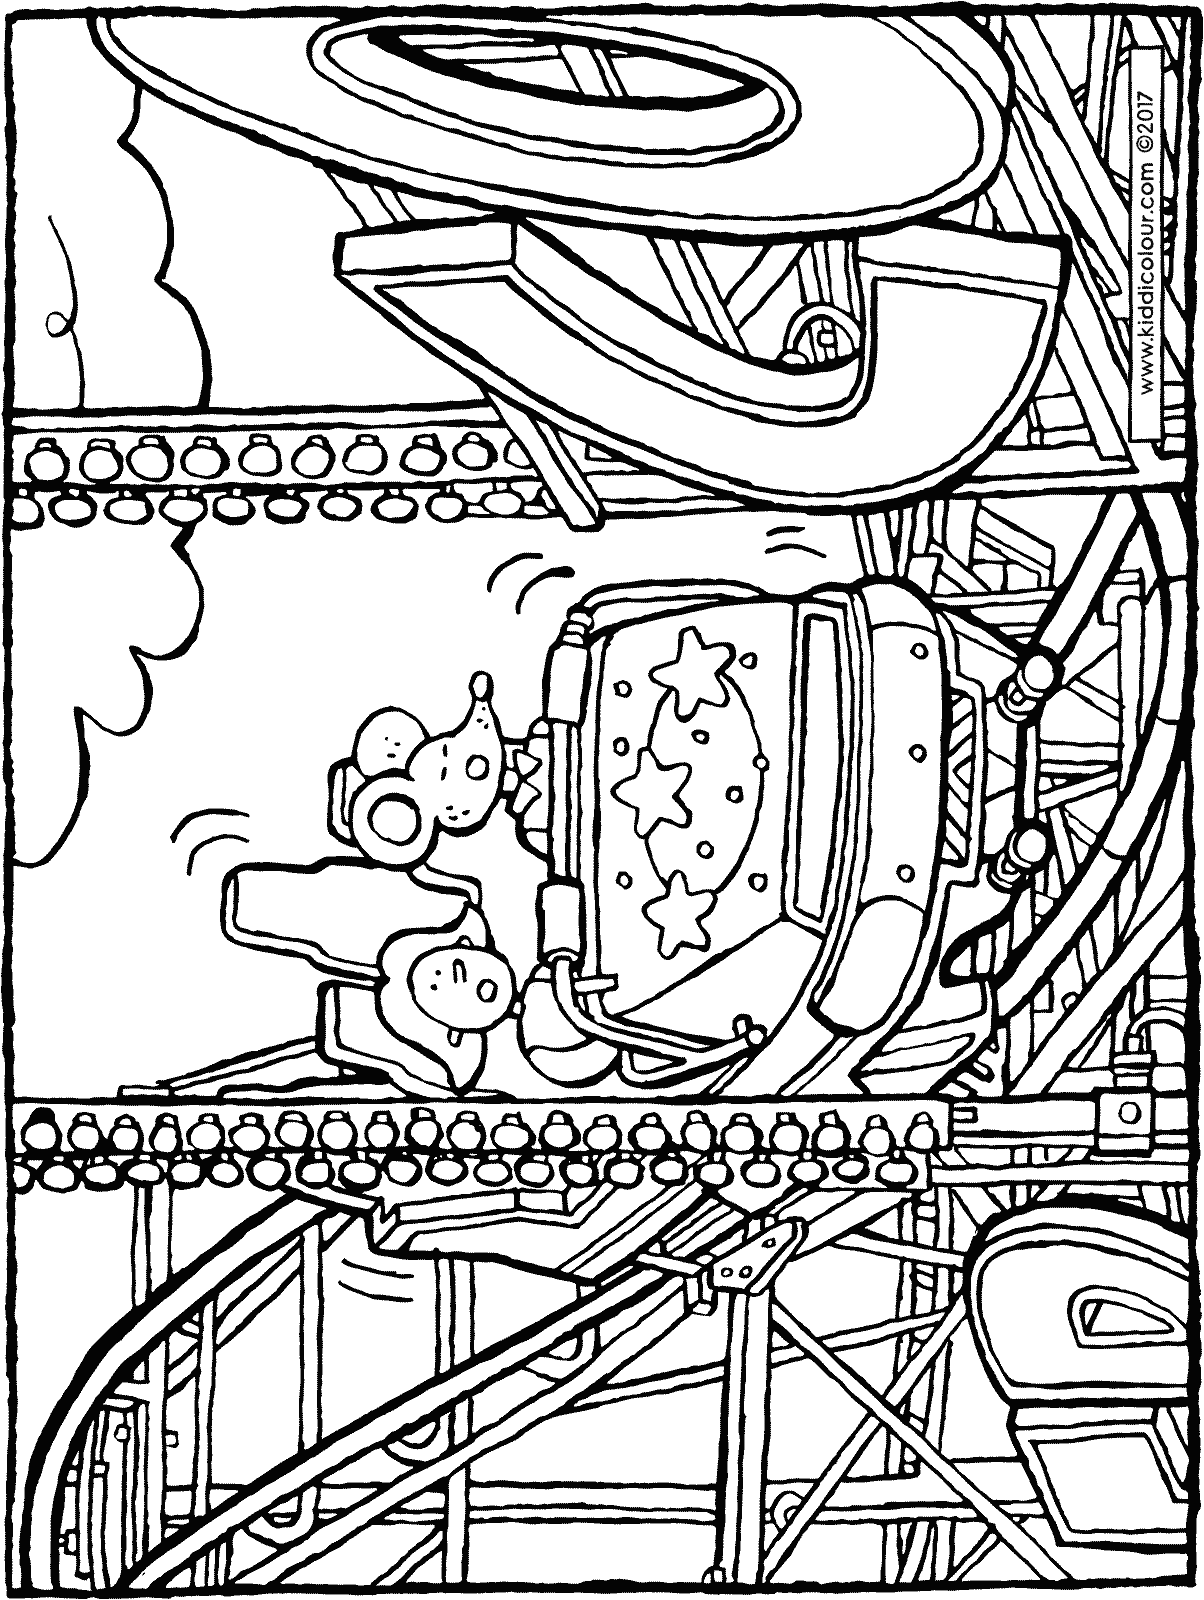 rollercoaster at the fair colouring page drawing picture 01H